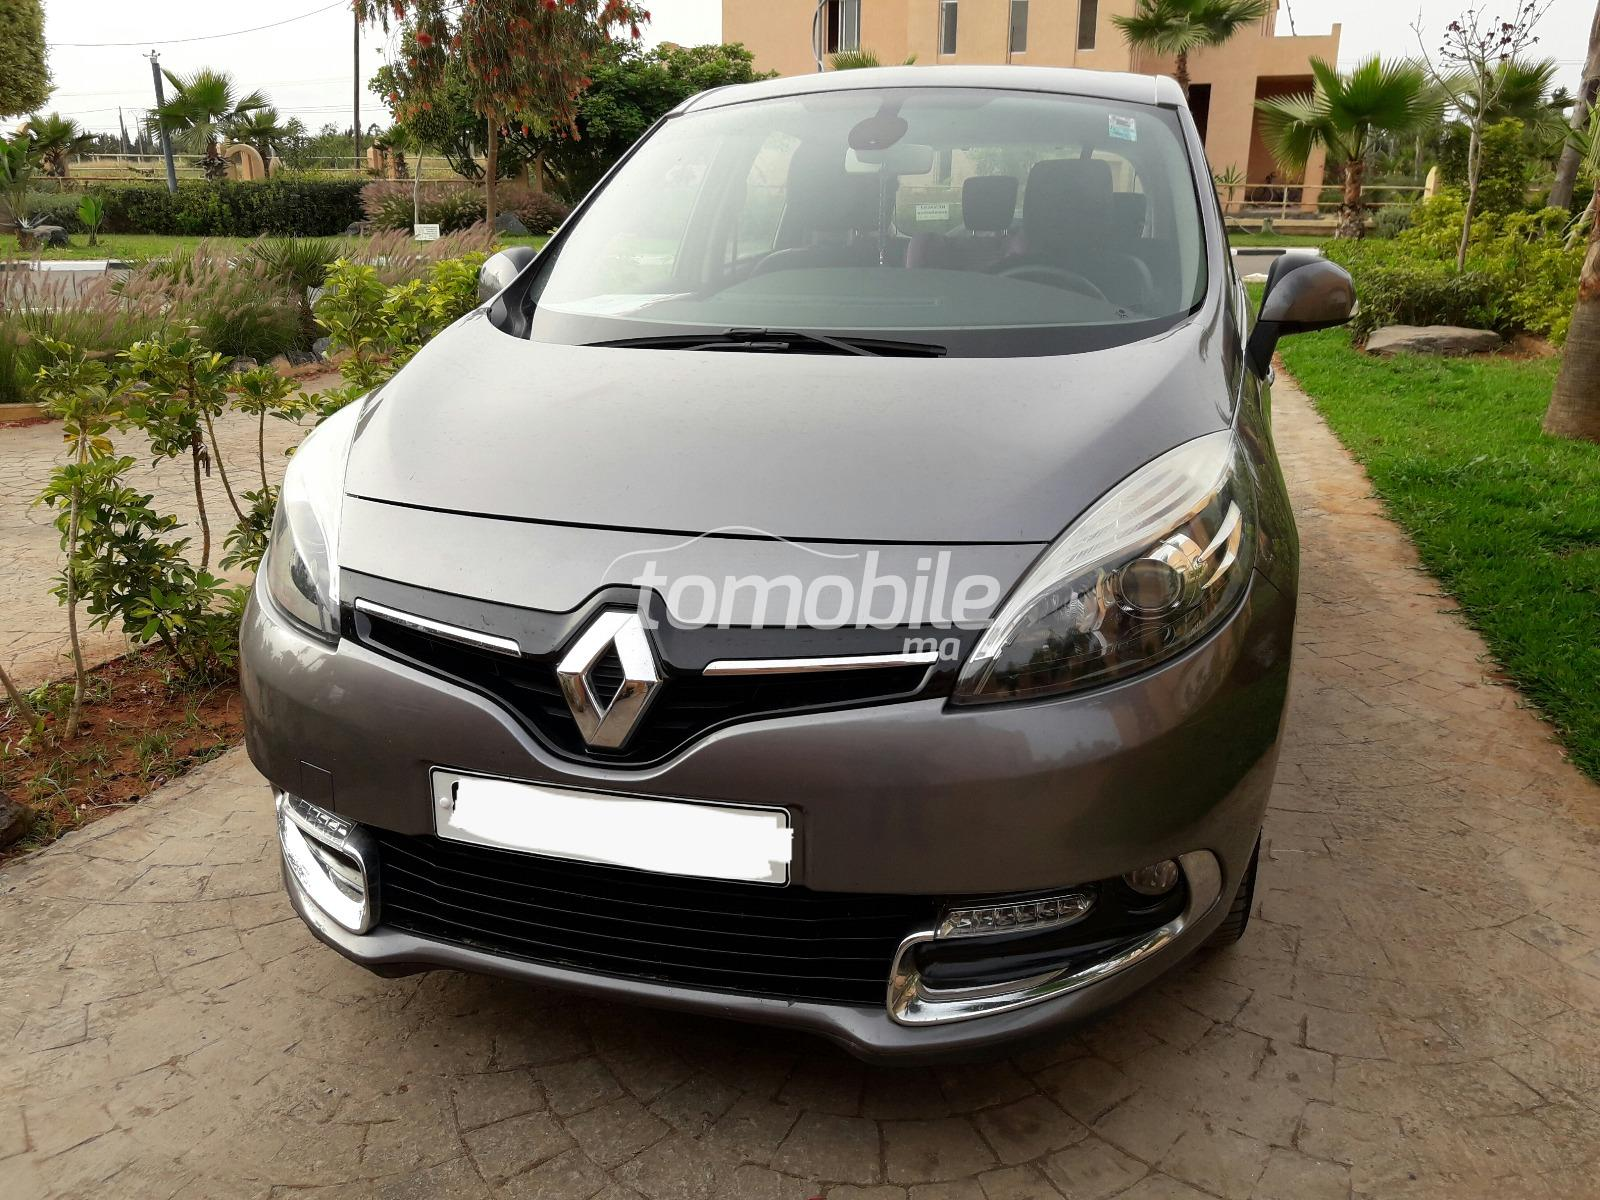 renault scenic diesel 2013 occasion 50000km casablanca 32798. Black Bedroom Furniture Sets. Home Design Ideas